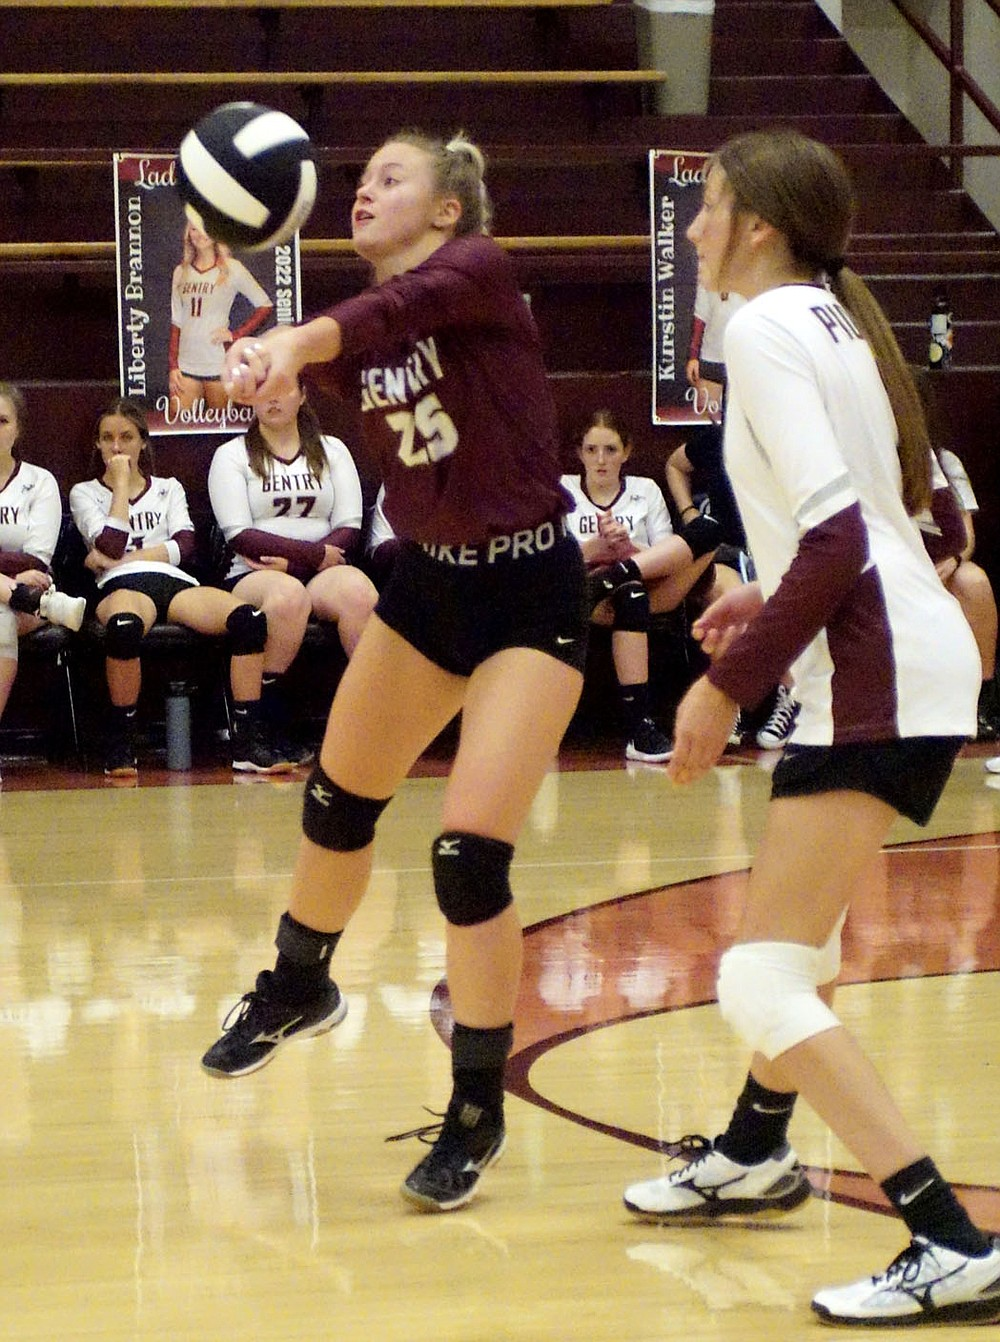 Westside Eagle Observer/RANDY MOLL Gentry senior Liberty Brannon receives a serve when the Lady Pioneers hosted the Lady Blackhawks from Pea Ridge on Thursday.